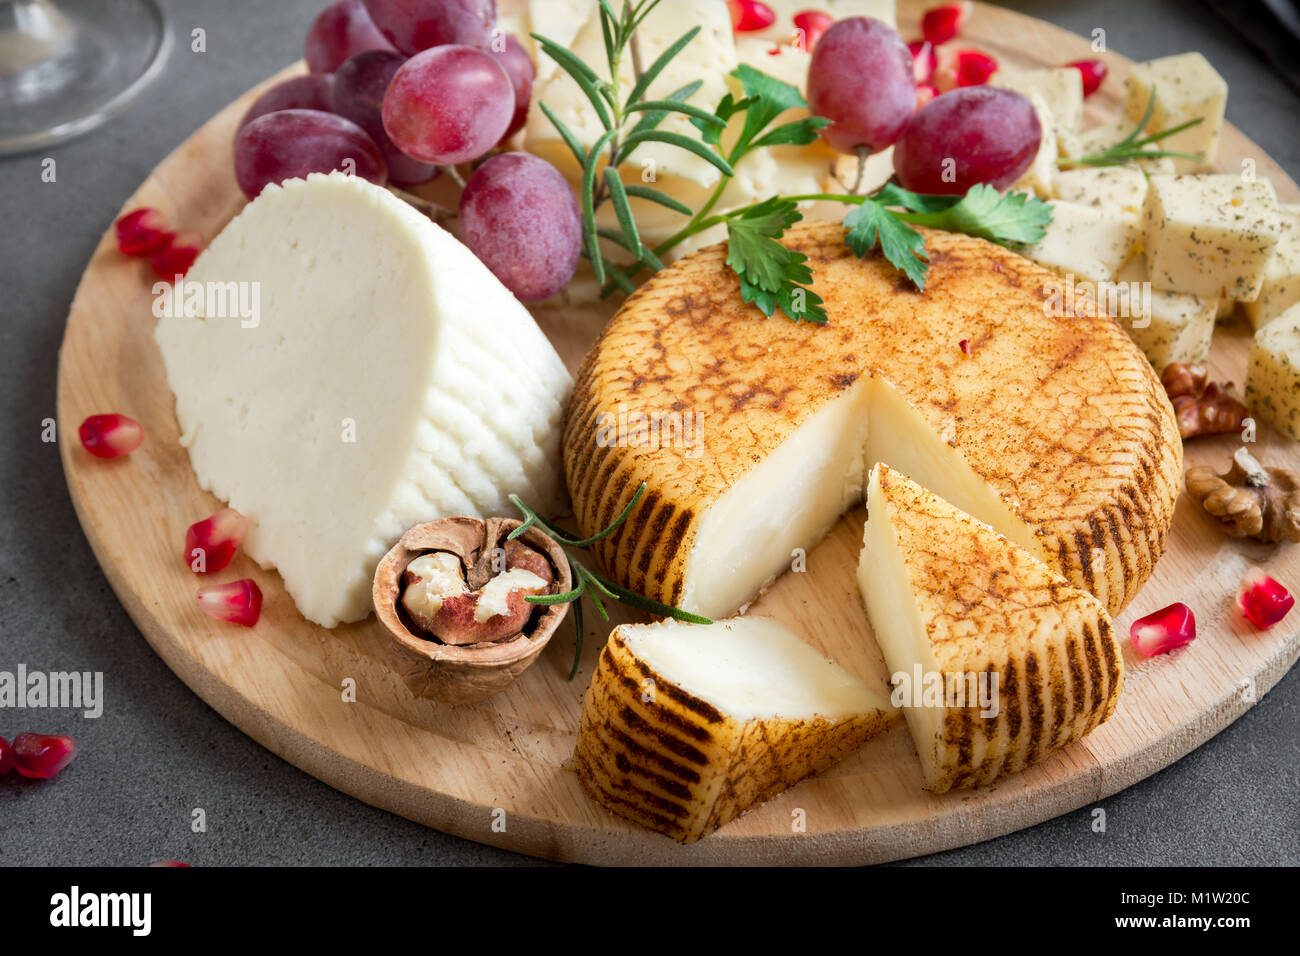 Cheese platter with assorted cheeses, grapes, nuts over gray stone background, copy space. Italian cheese and fruit - Stock Image